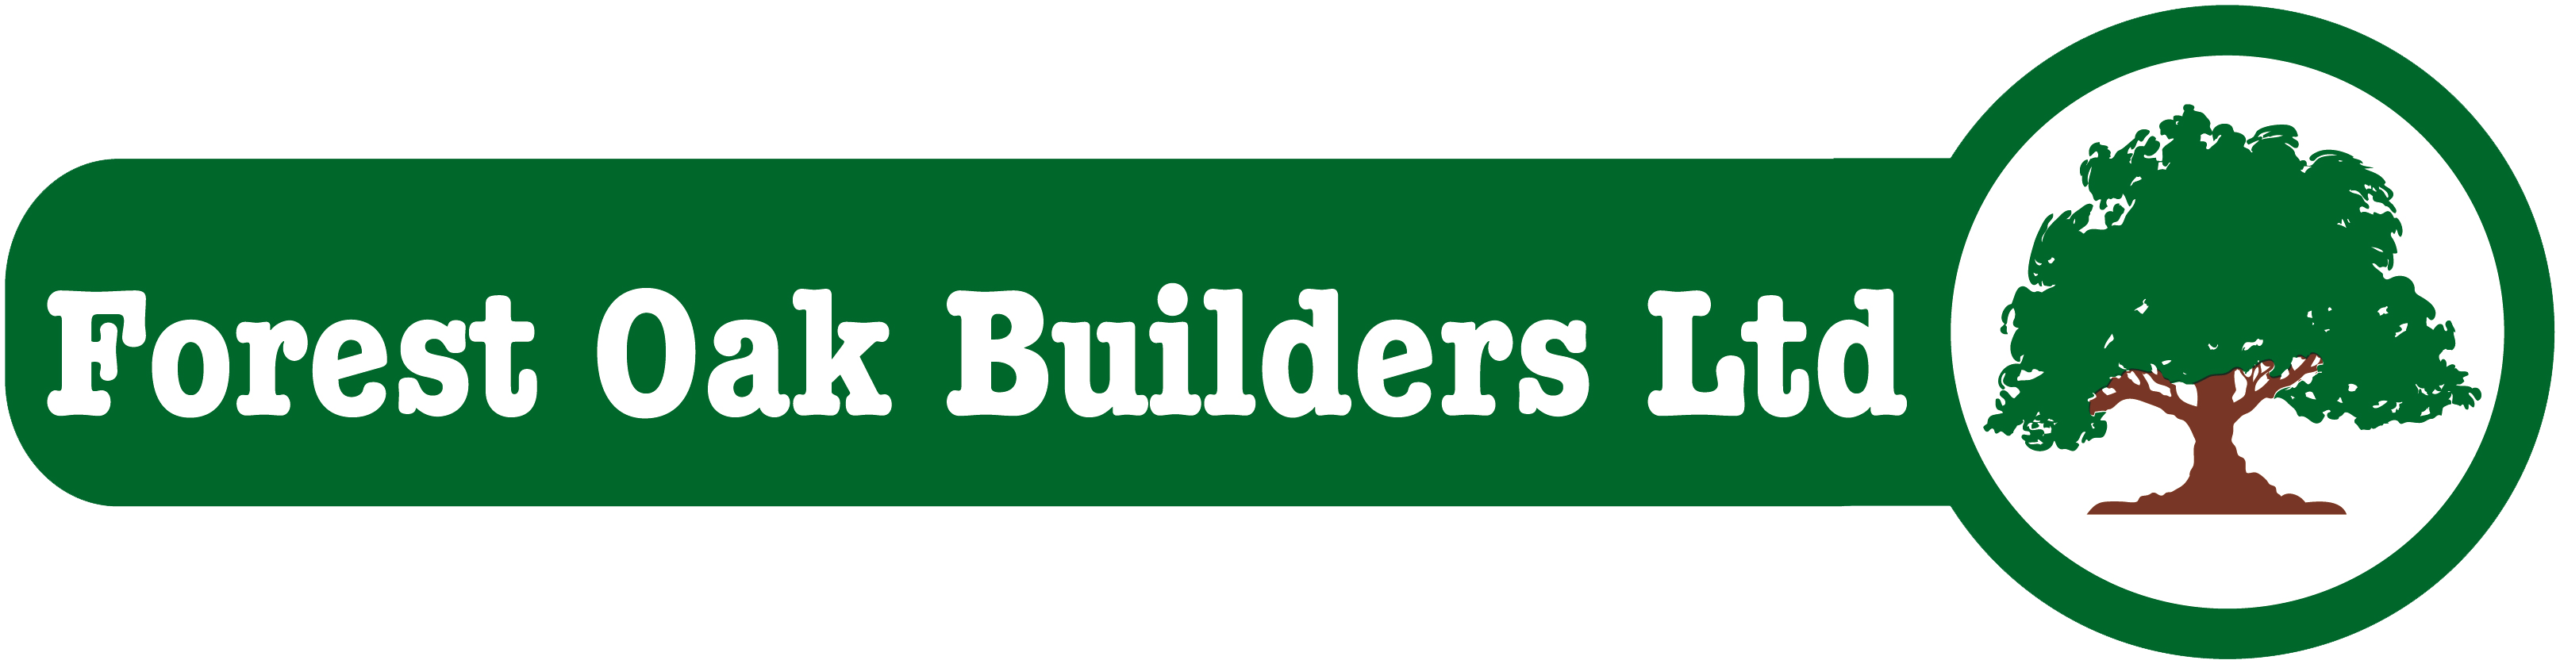 Forest Oak Builders